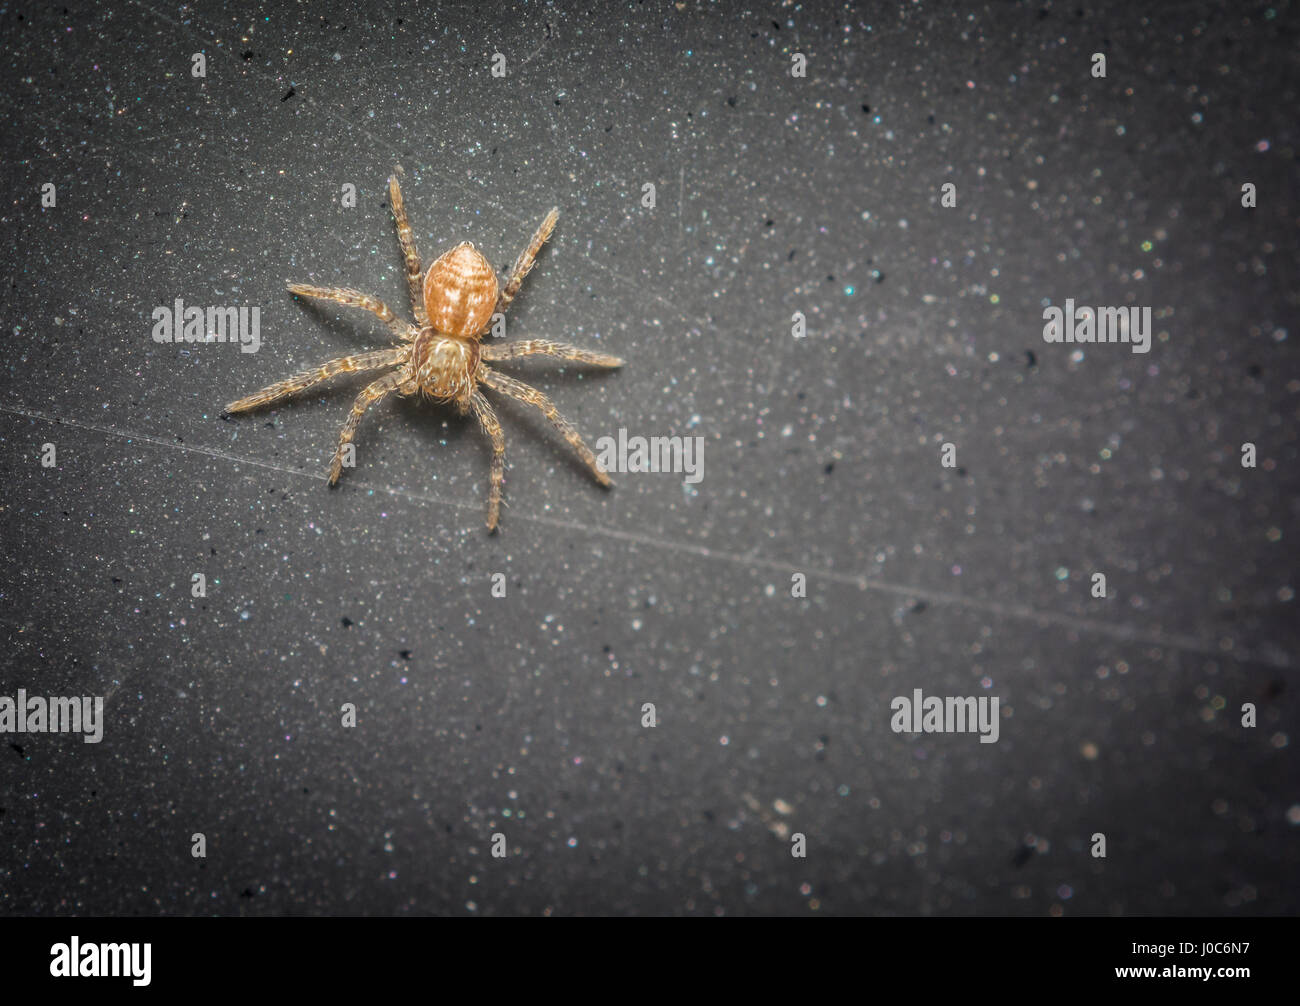 Spider Anatomy Stockfotos & Spider Anatomy Bilder - Alamy